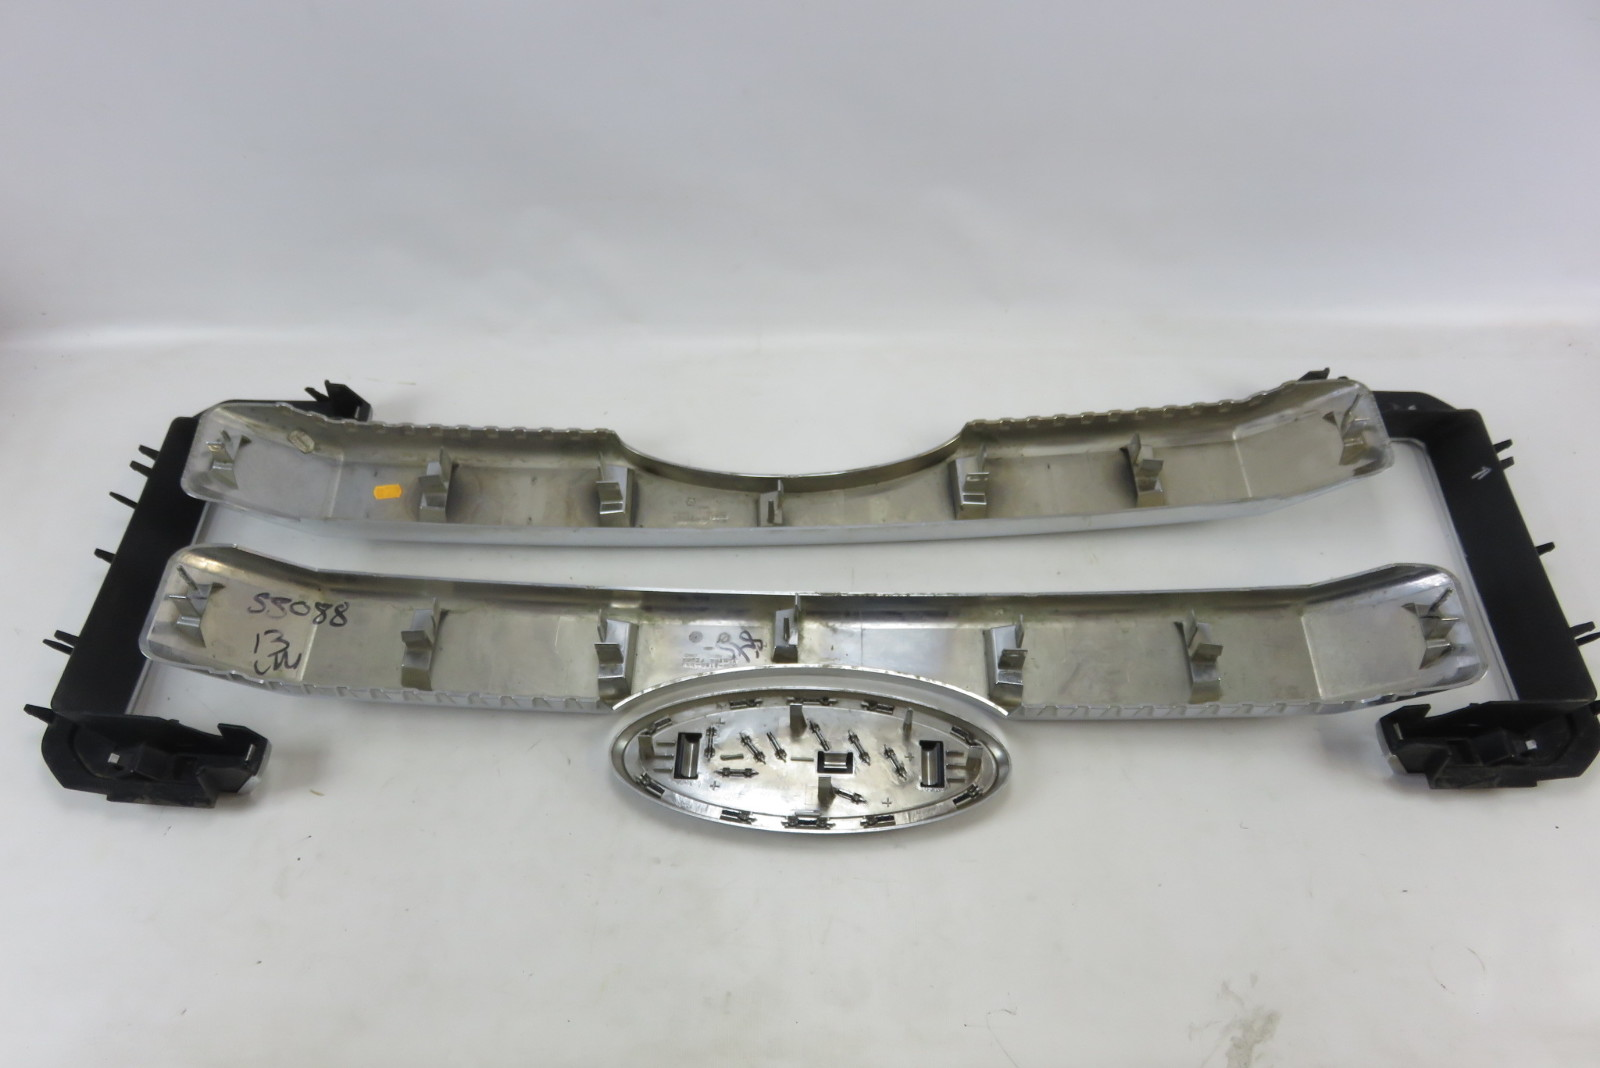 13 Ford F350 F250 grill front inner chrome grille set w/ emblem badge oem | S Auto Parts